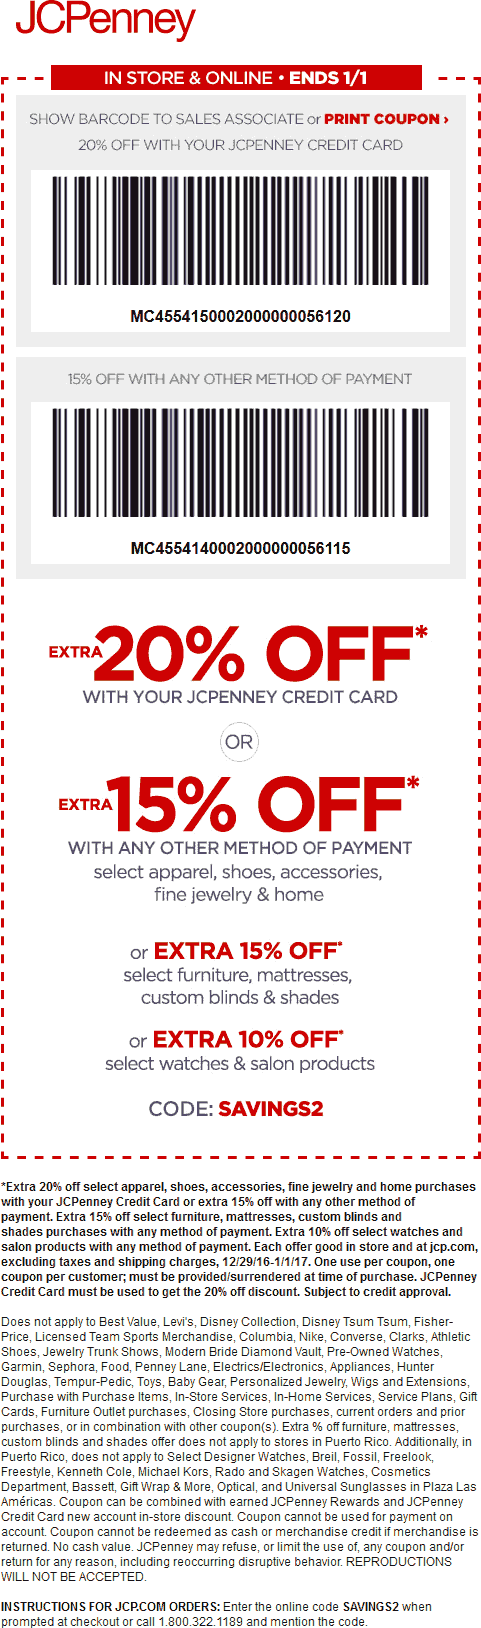 JCPenney Coupon August 2018 15% off at JCPenney, or online via promo code SAVINGS2